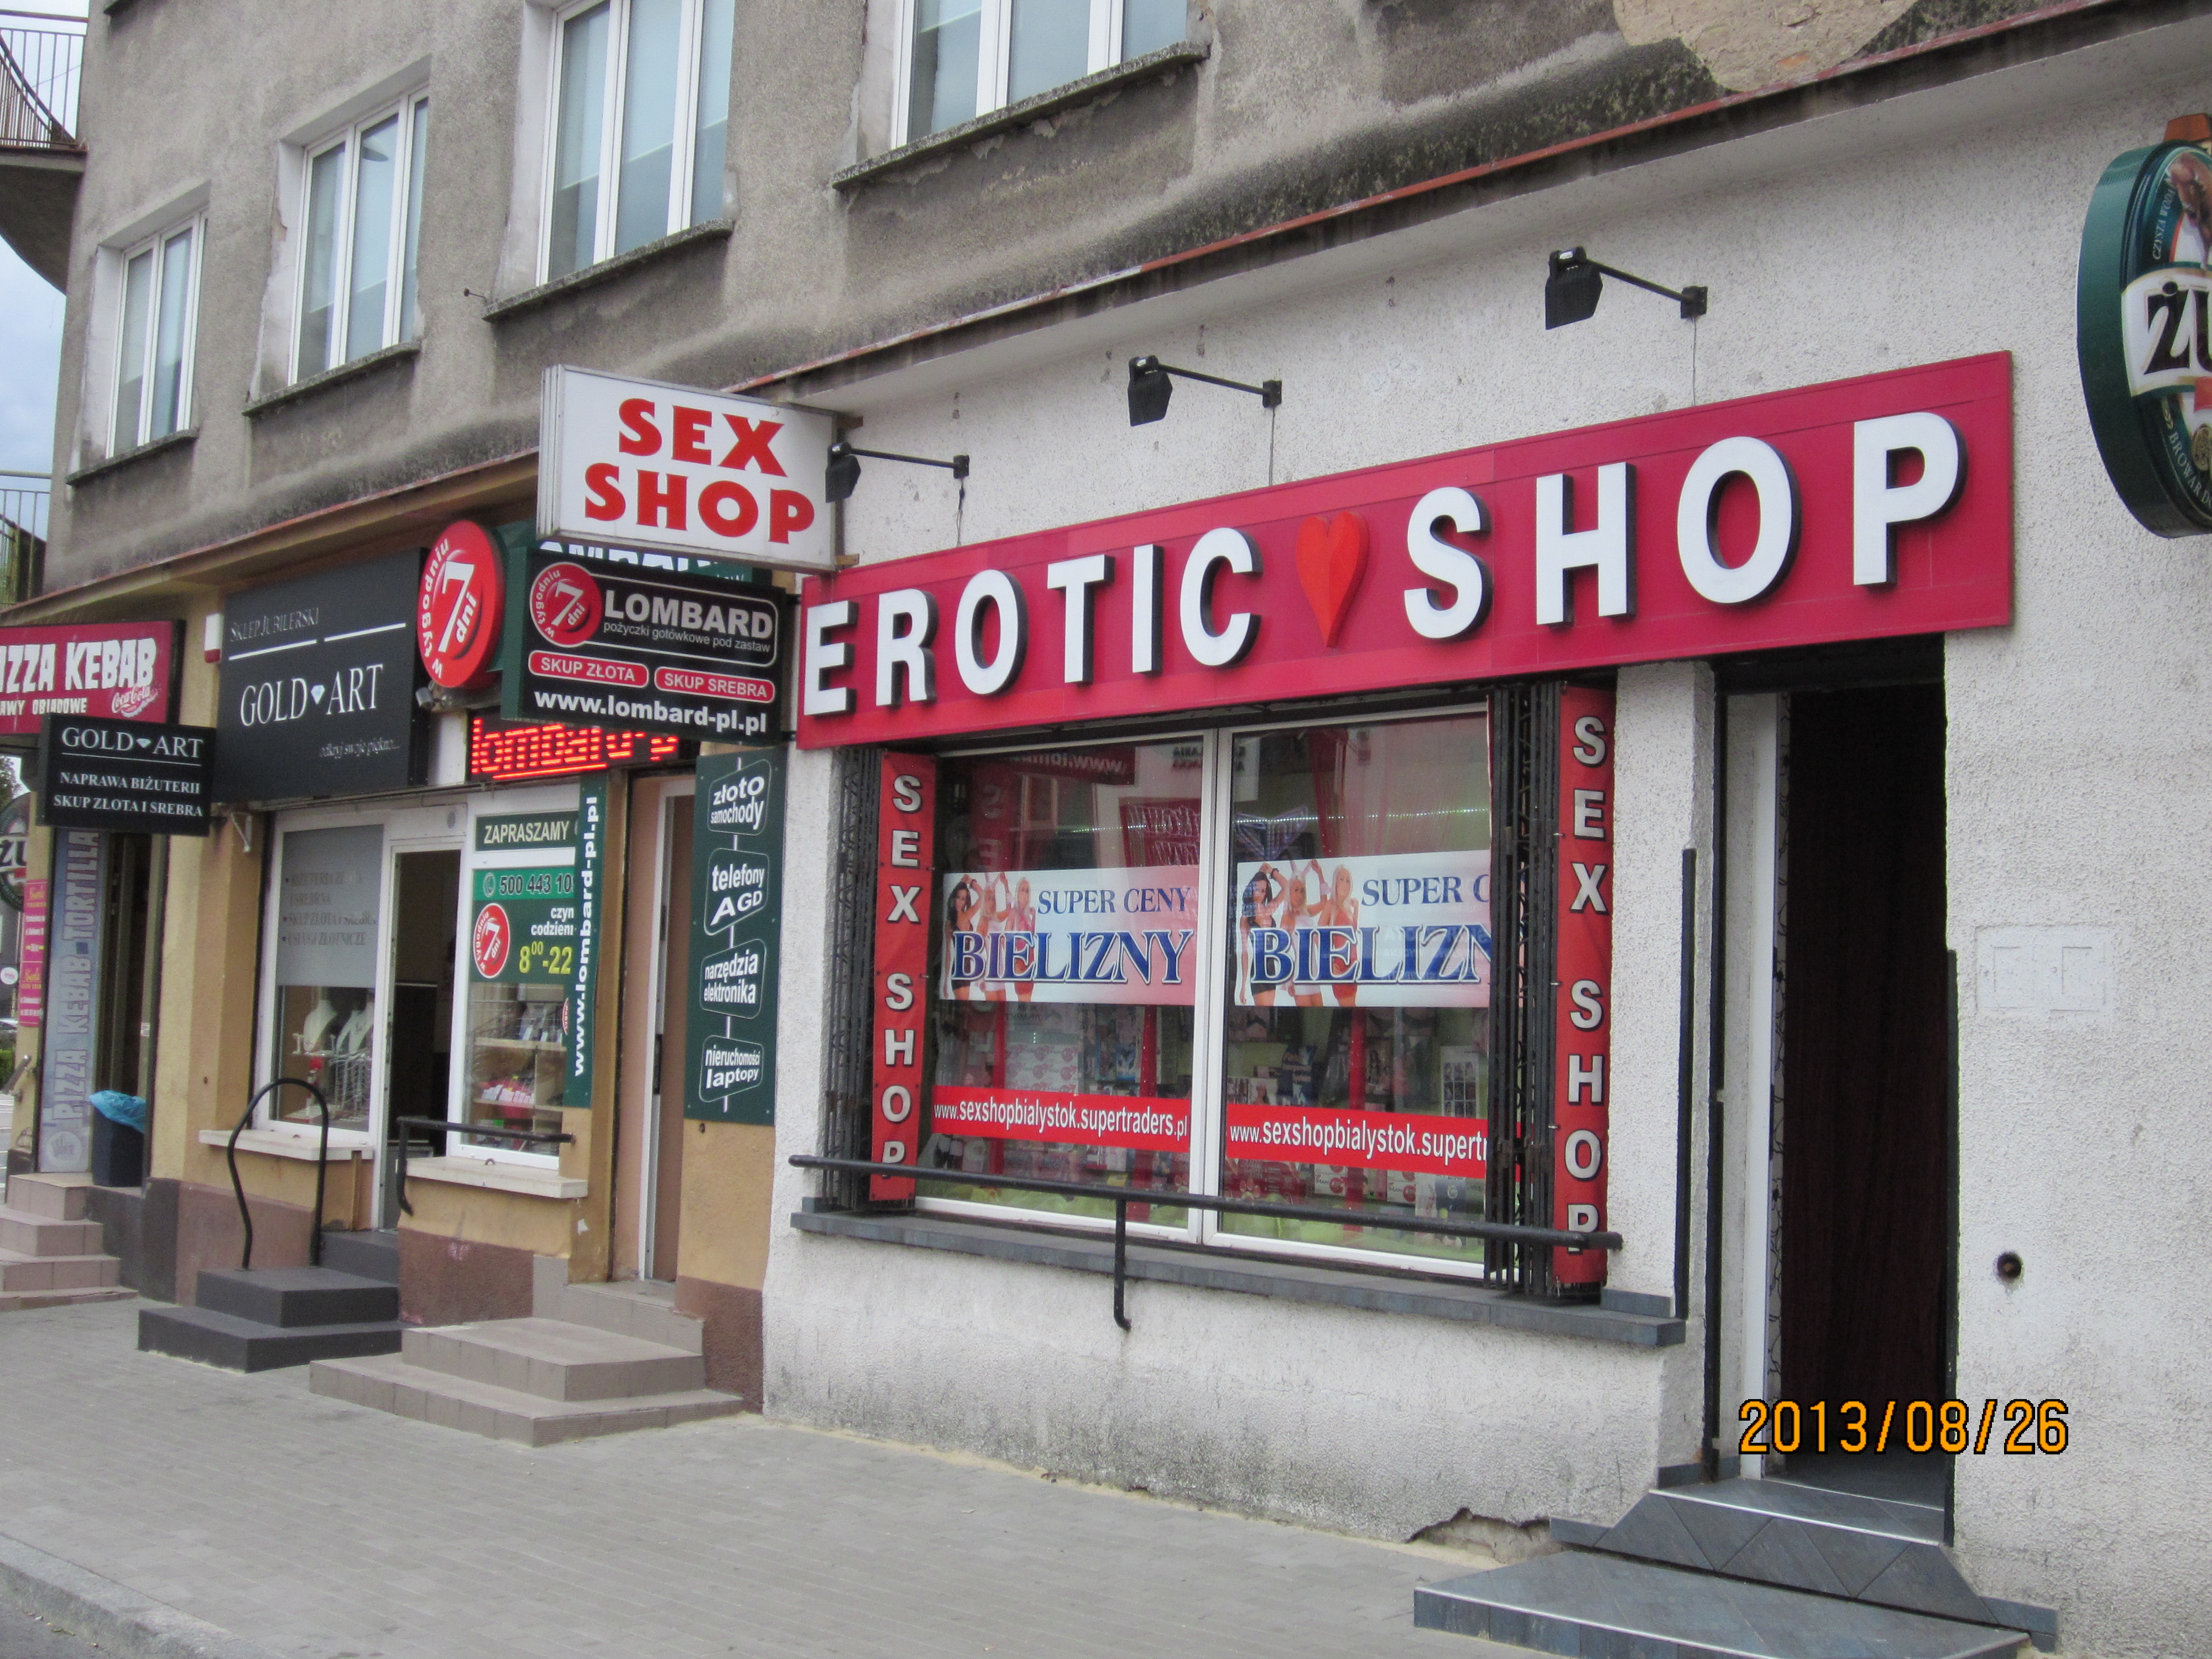 Shop for erotic